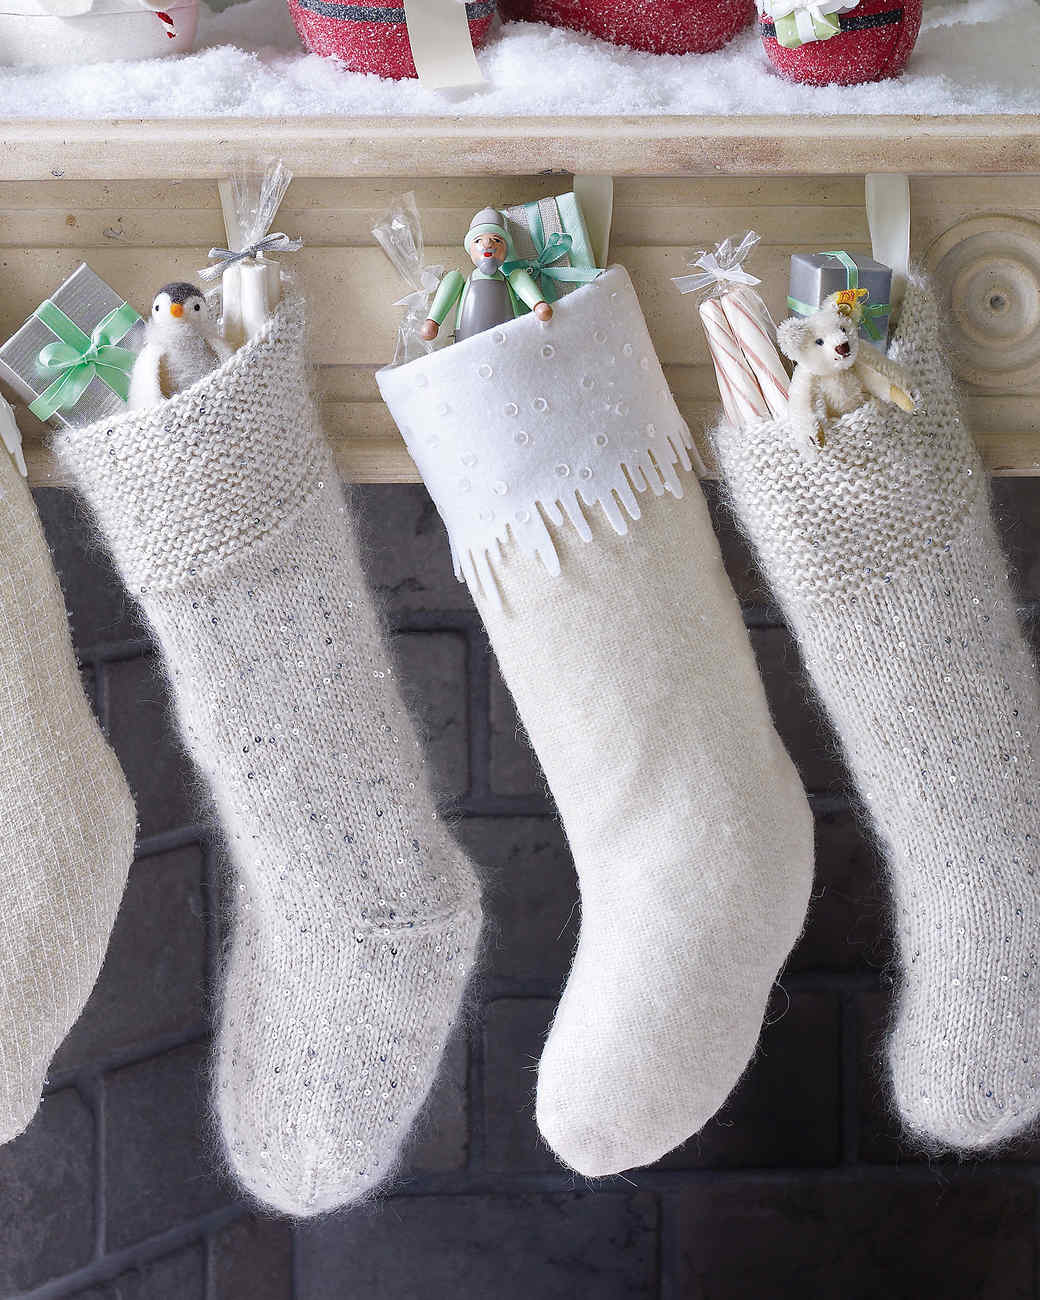 mld105065_1209_fireplace_stockings.jpg